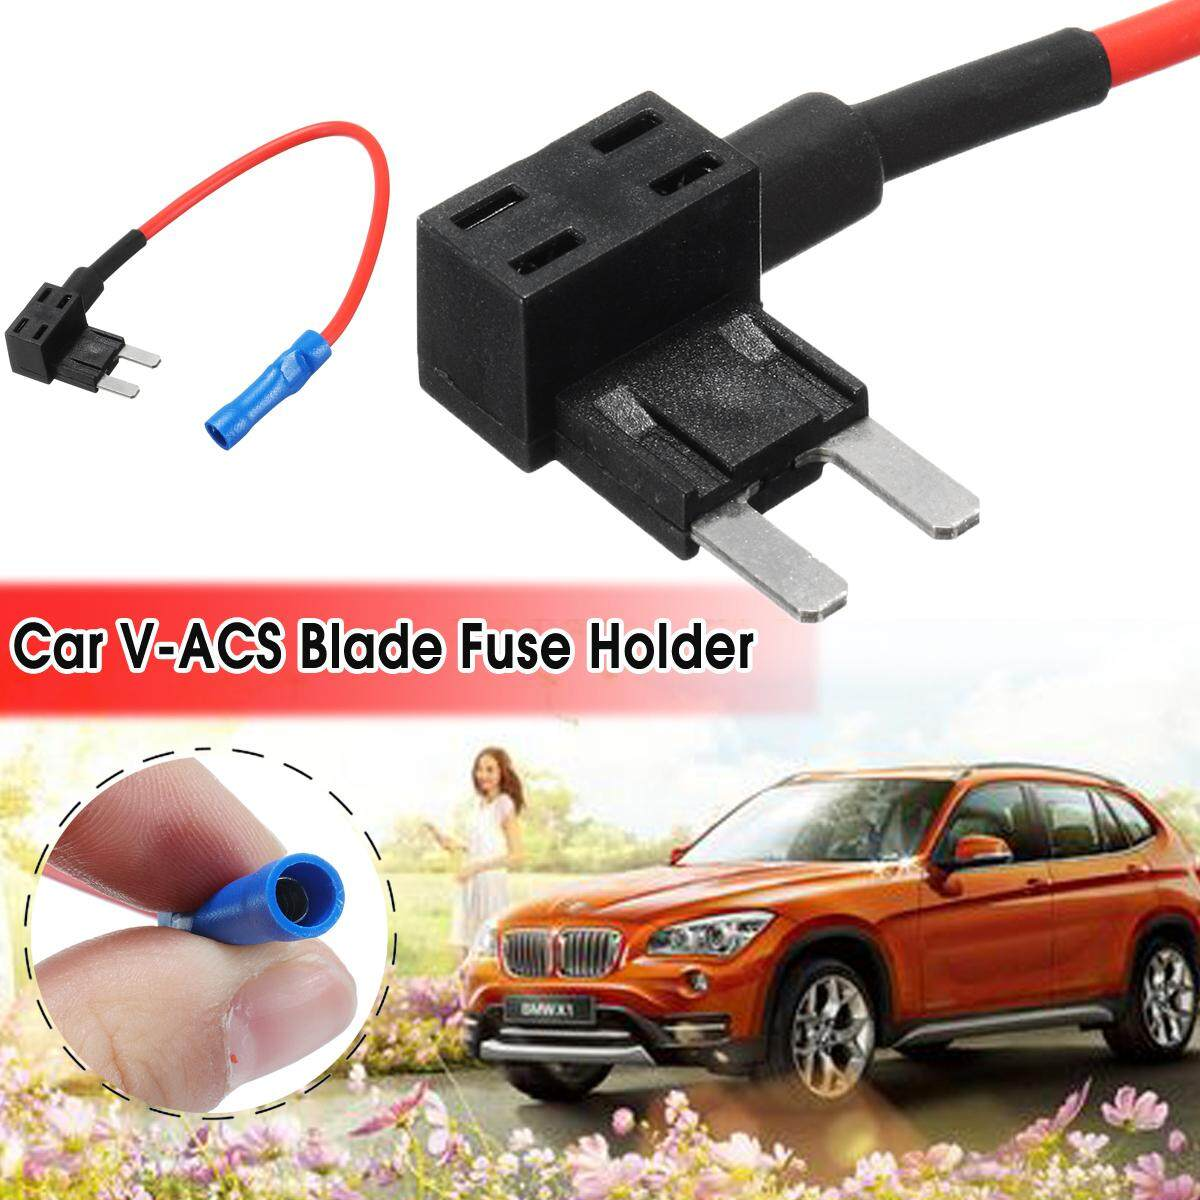 Car Add A Circuit Fuse Tap Blade V-Acs Fuse Holders Vehicle Circuit Protection By Freebang.